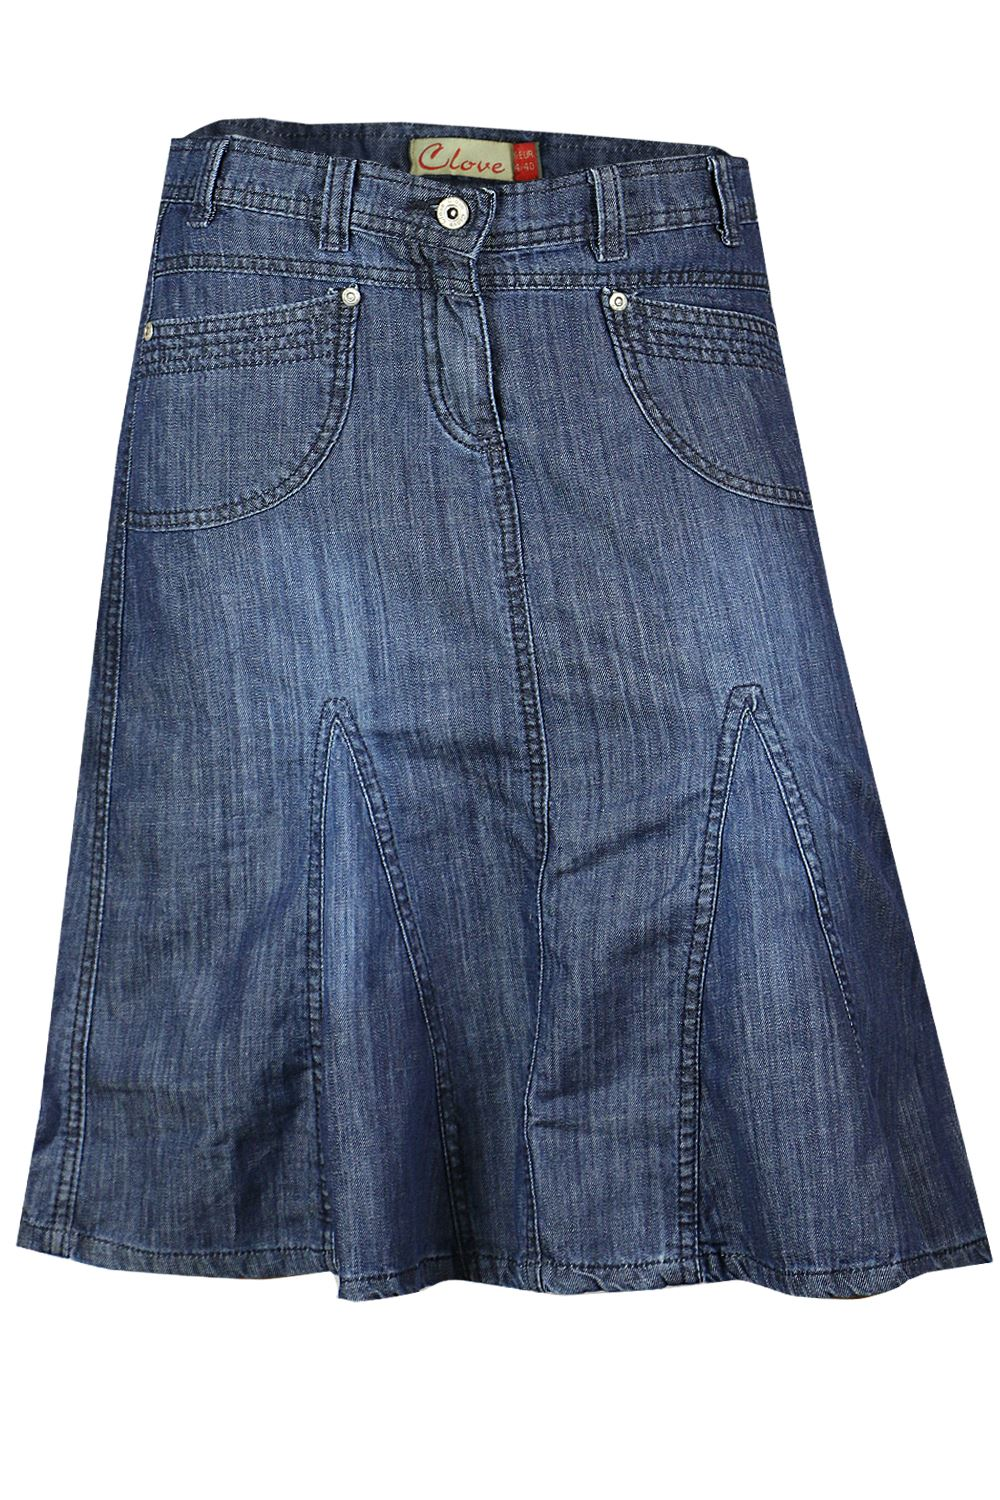 knee length a line soft wash light denim skirt plus size